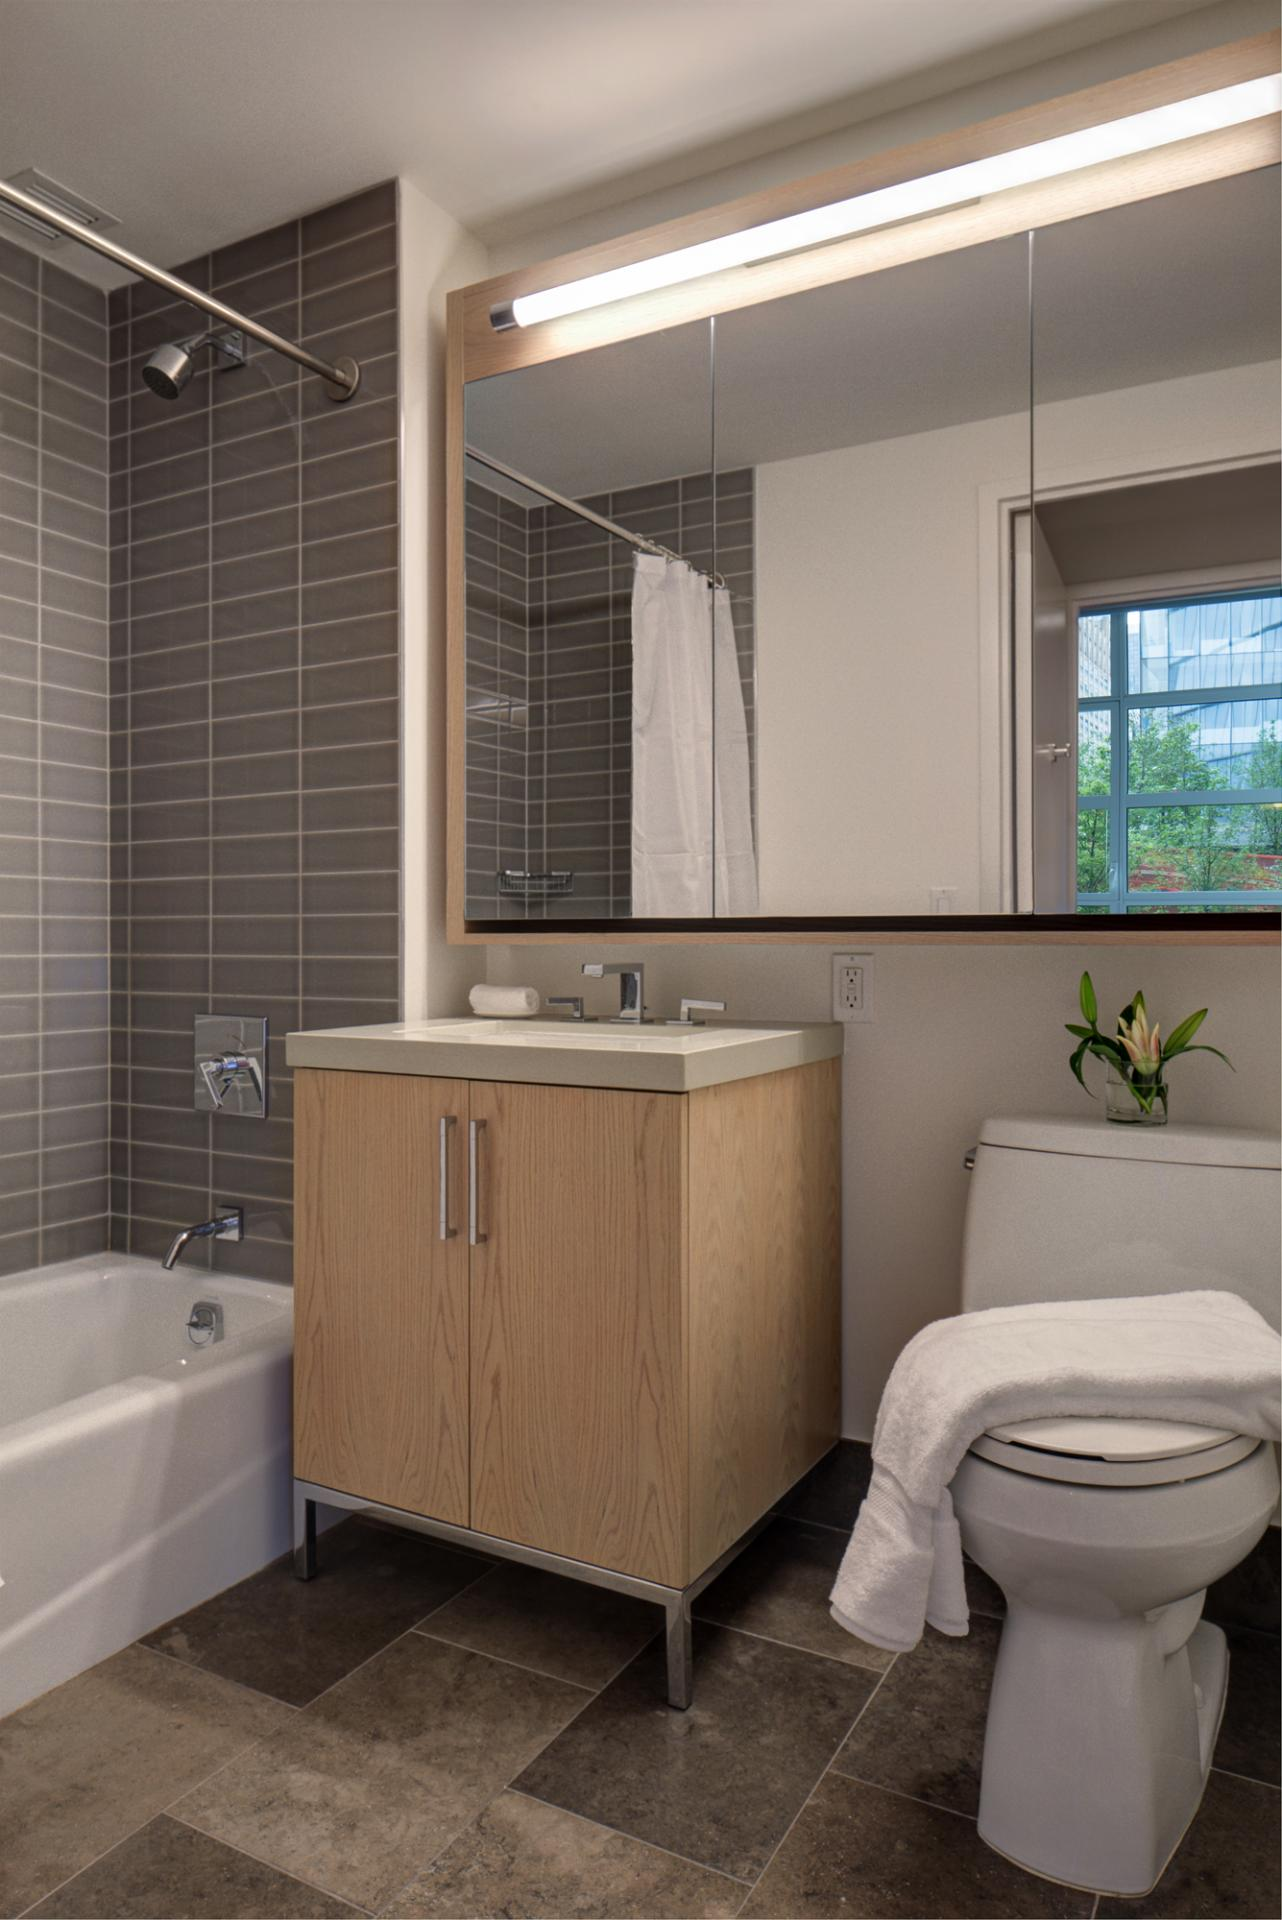 Bathroom at Abington House Apartments - Citybase Apartments